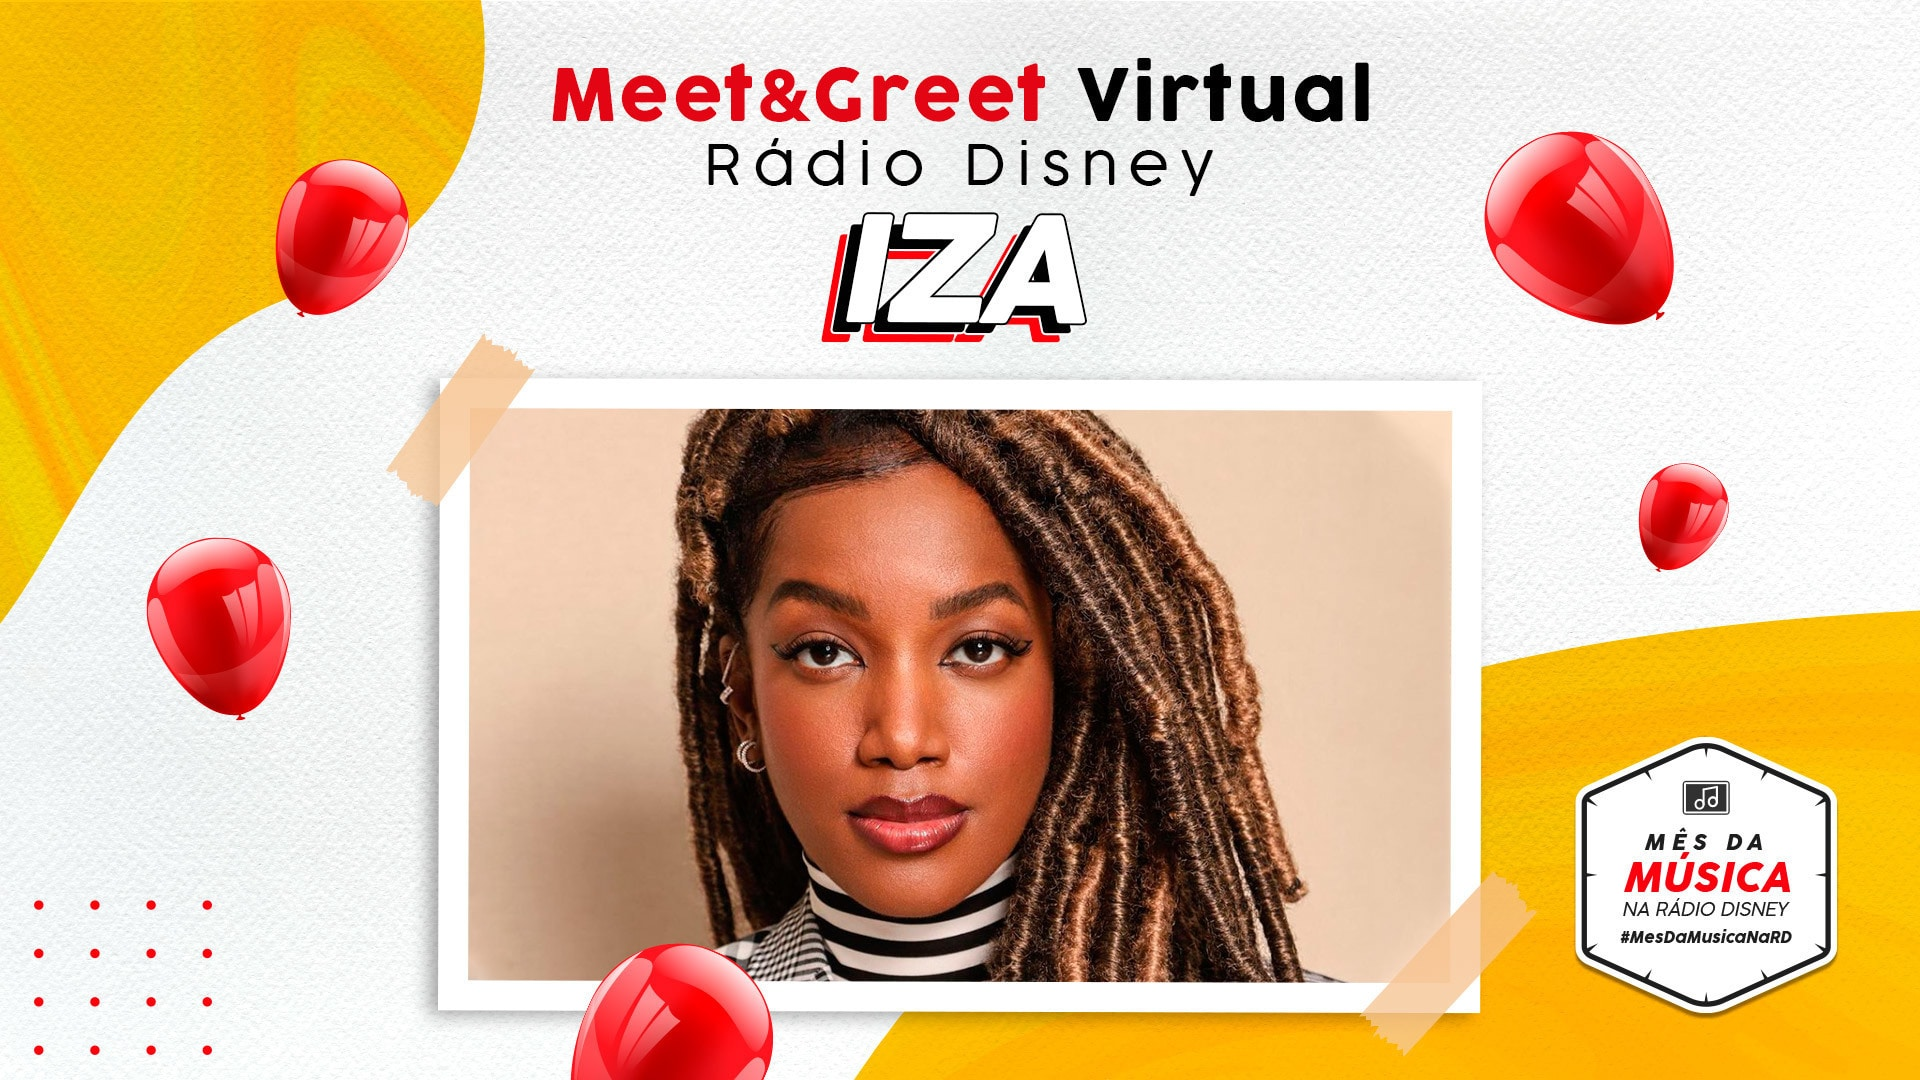 MEET & GREET RÁDIO DISNEY VIRTUAL - IZA